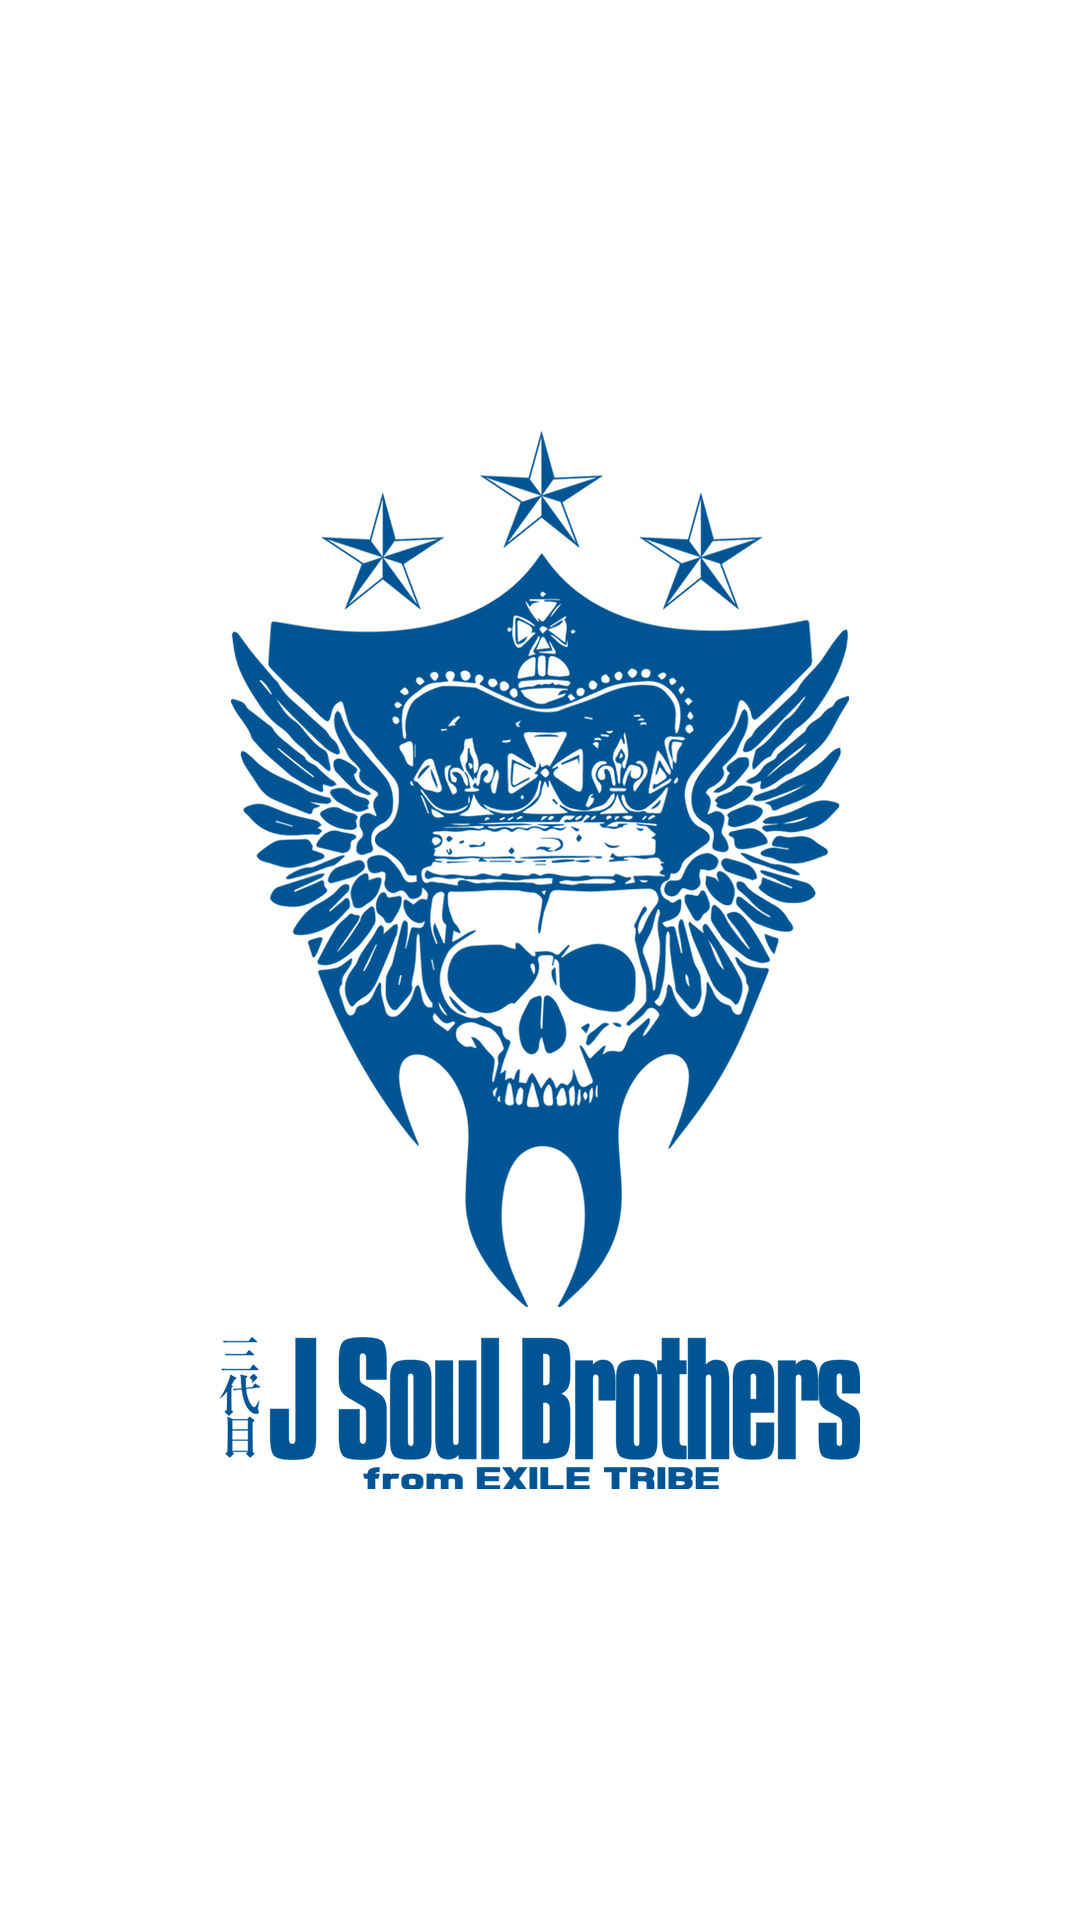 3jsb i09 - 三代目 J SOUL BROTHERSの高画質スマホ壁紙40枚 [iPhone&Androidに対応]